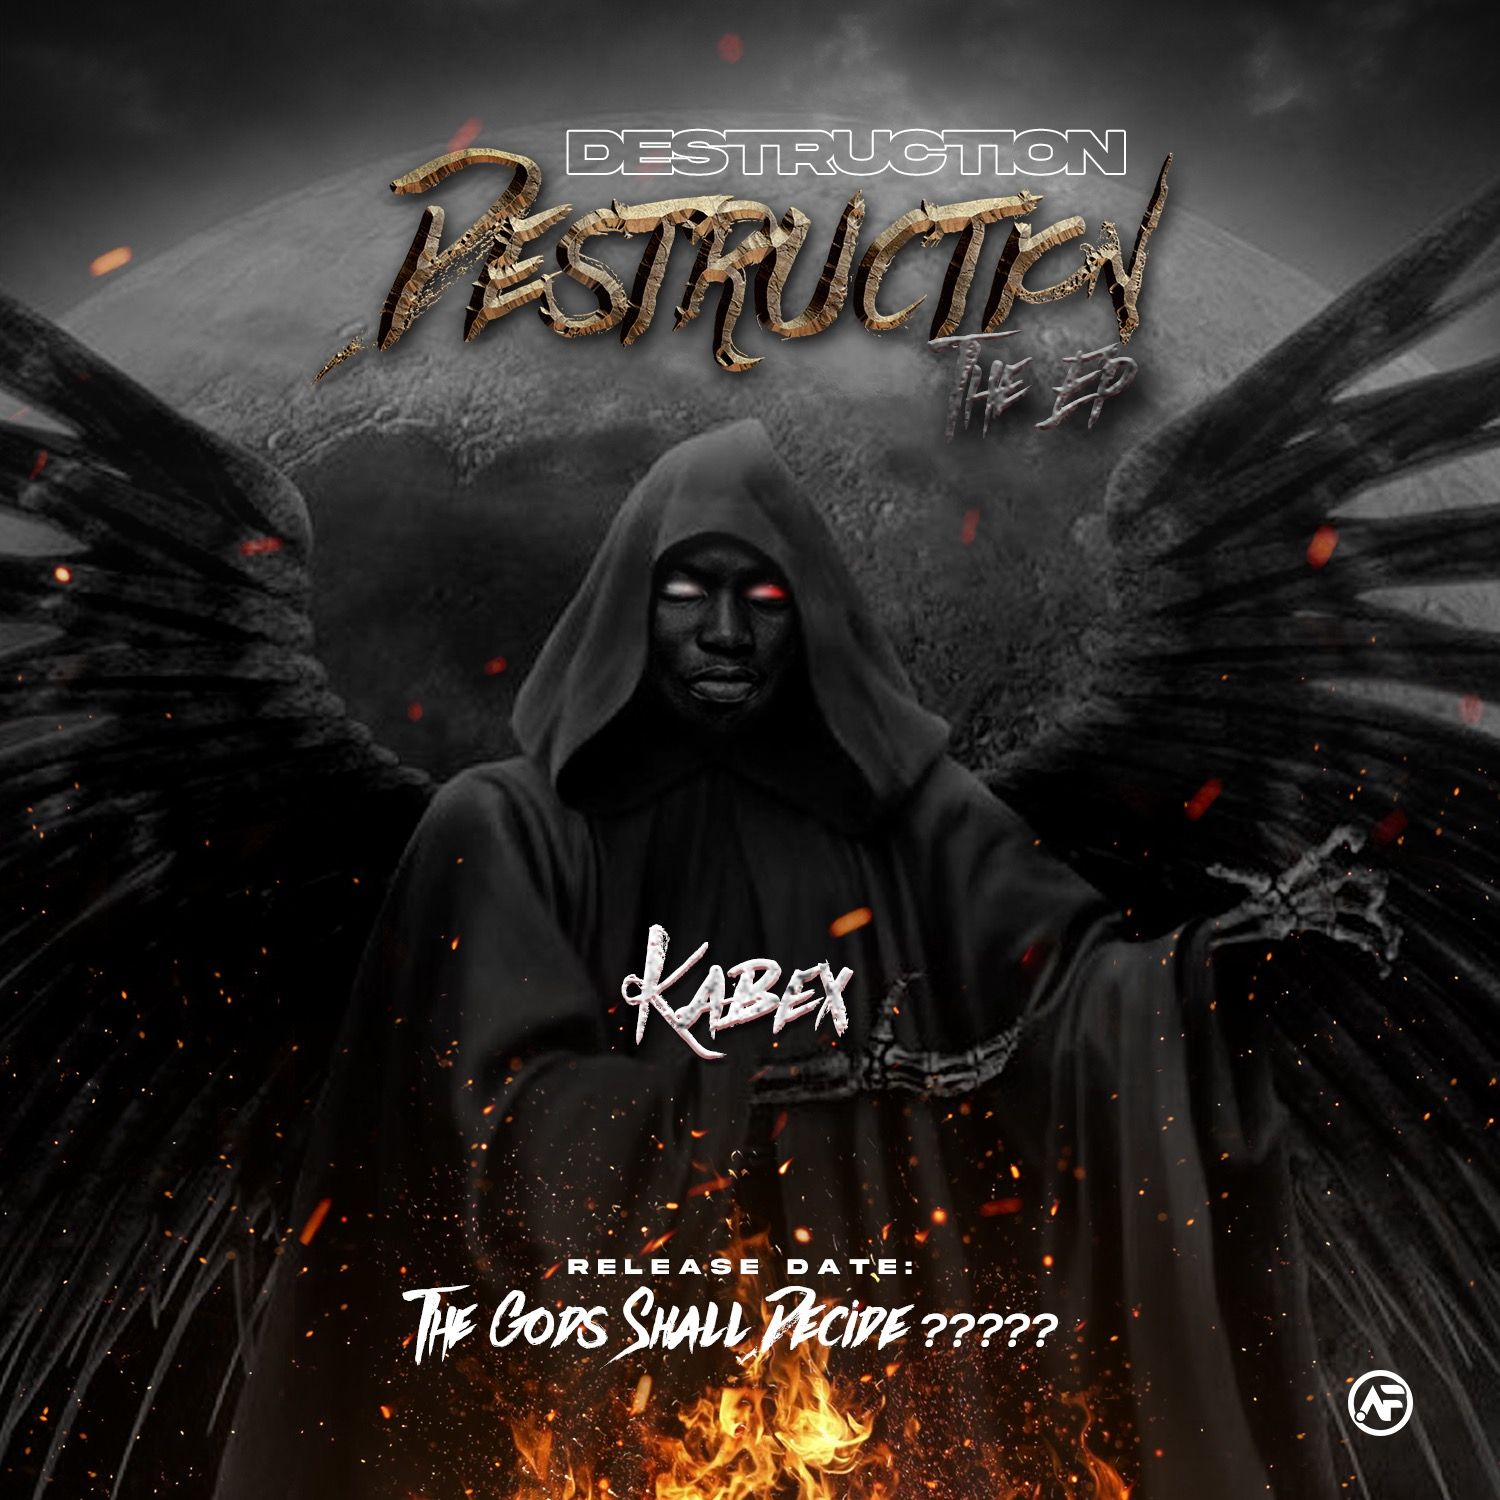 Kabex - Destruction 2.0 (The EP)